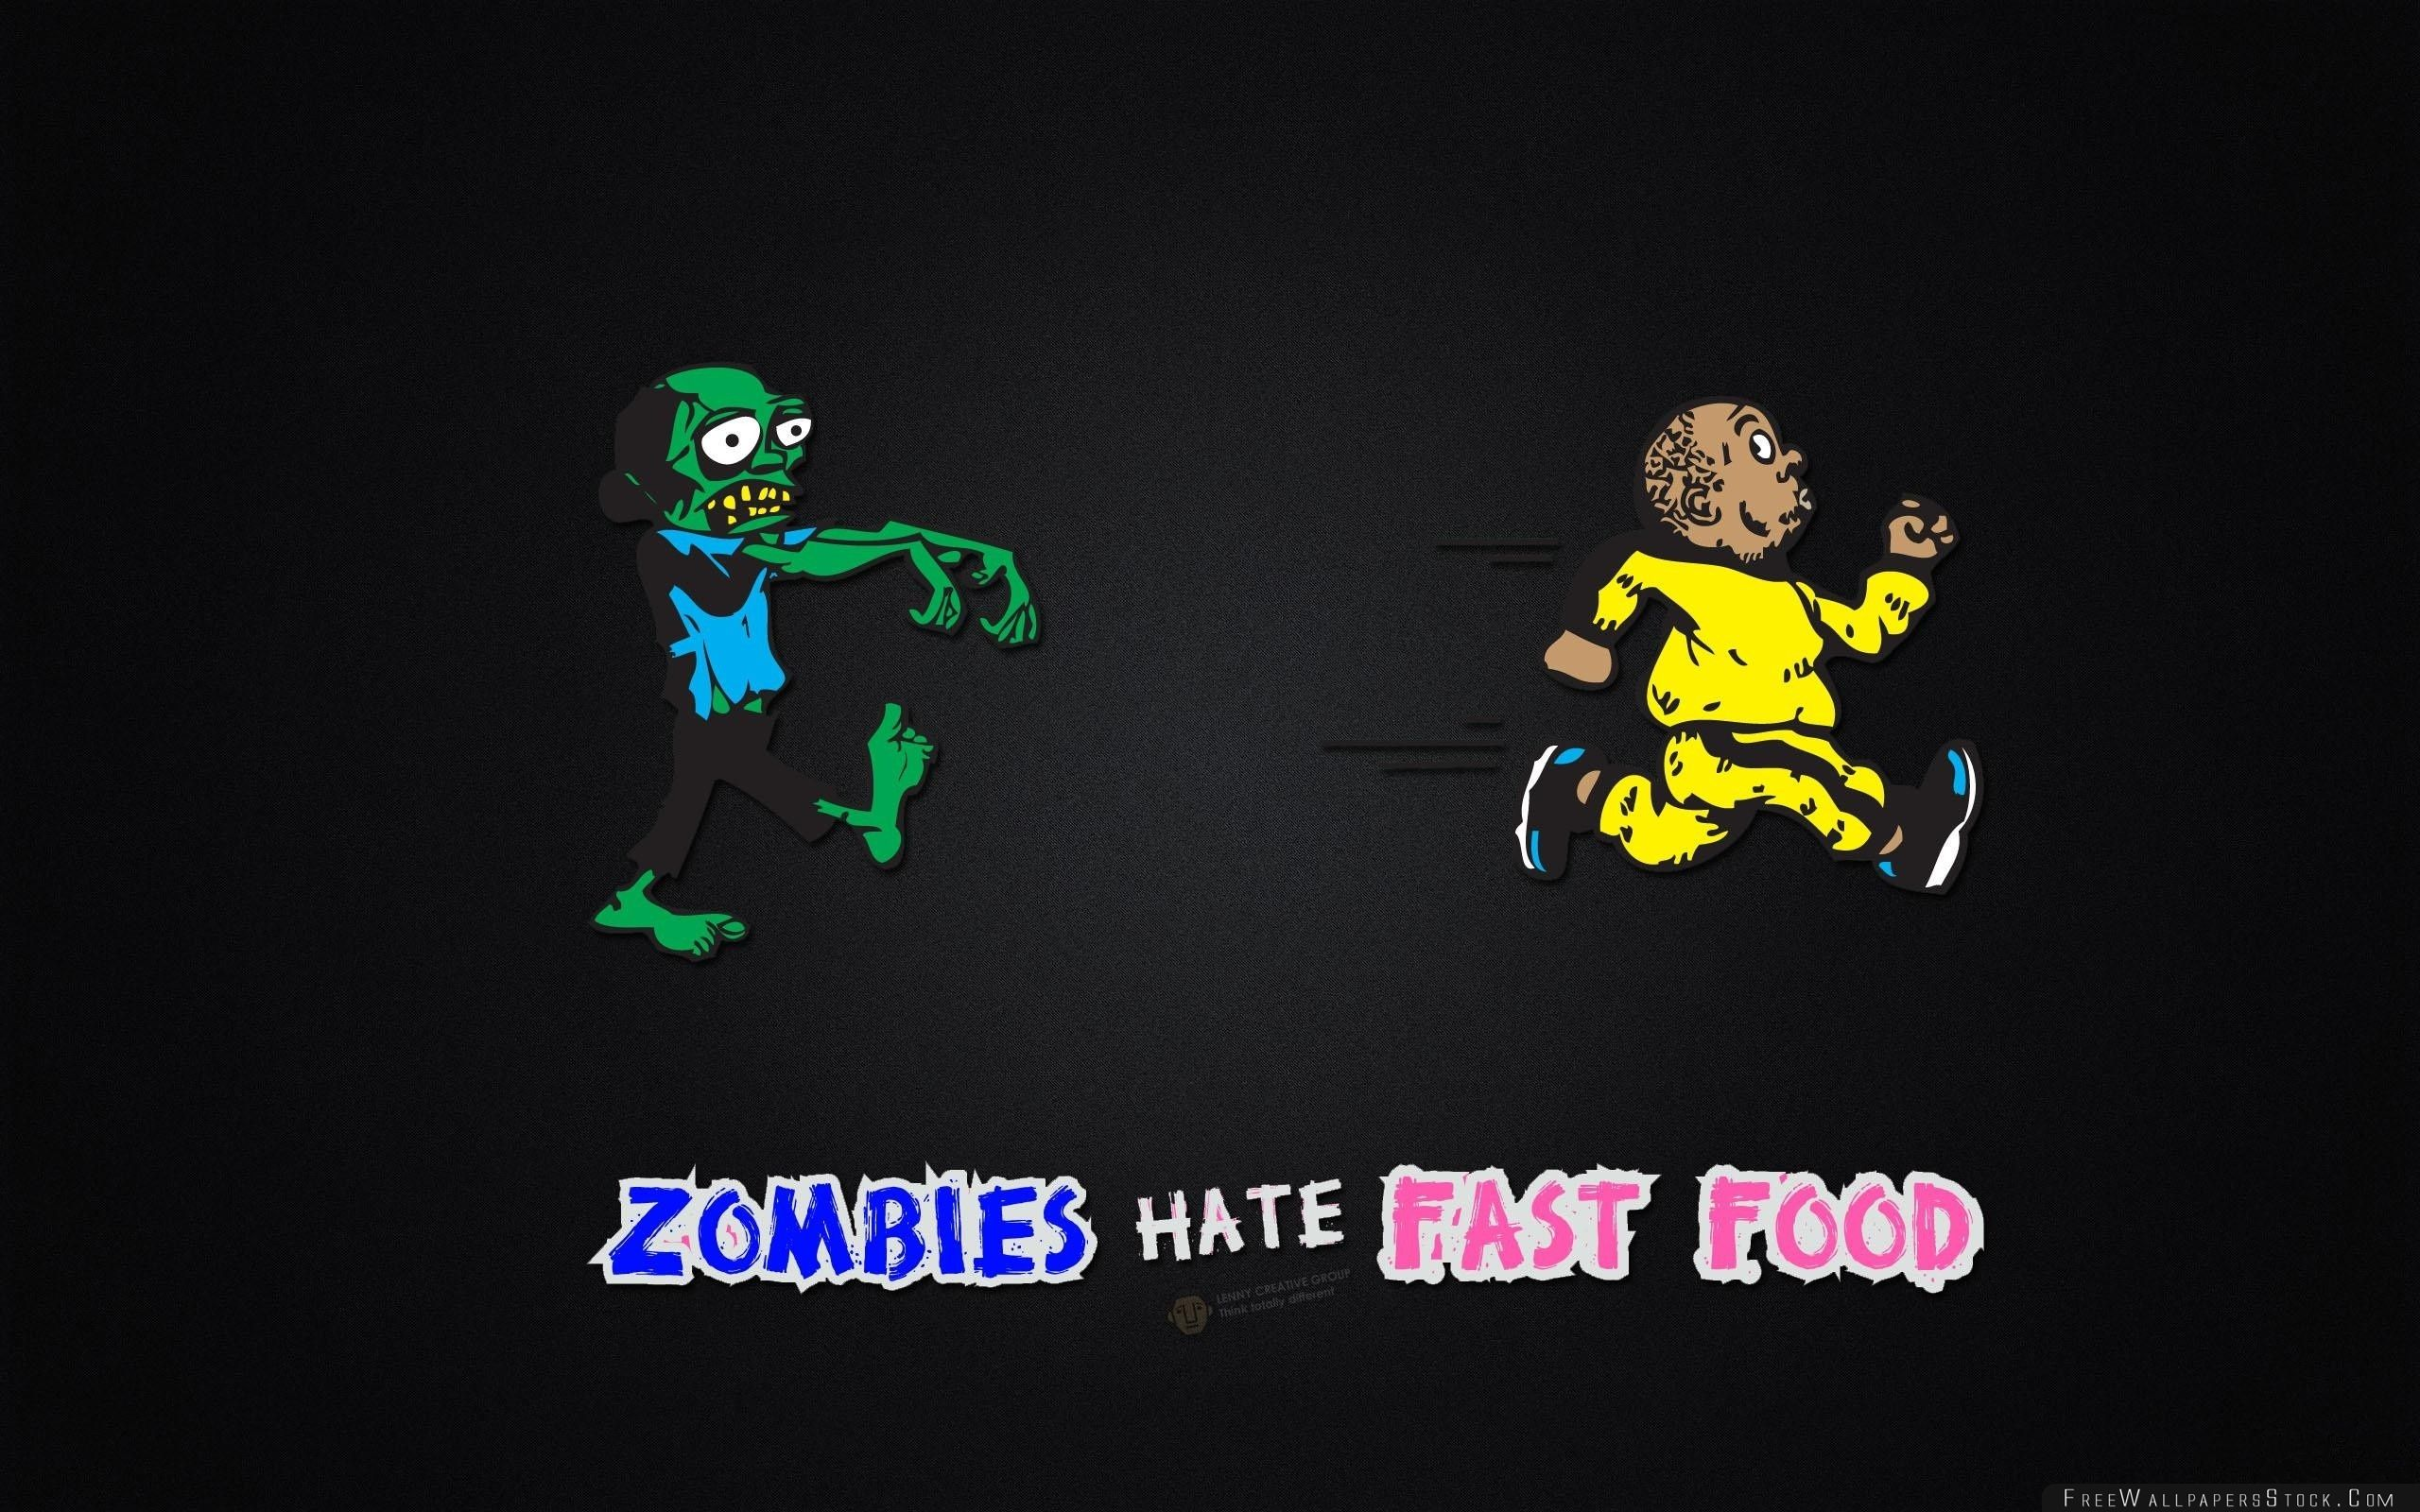 Download Free Wallpaper Zombies Hate Fast Food